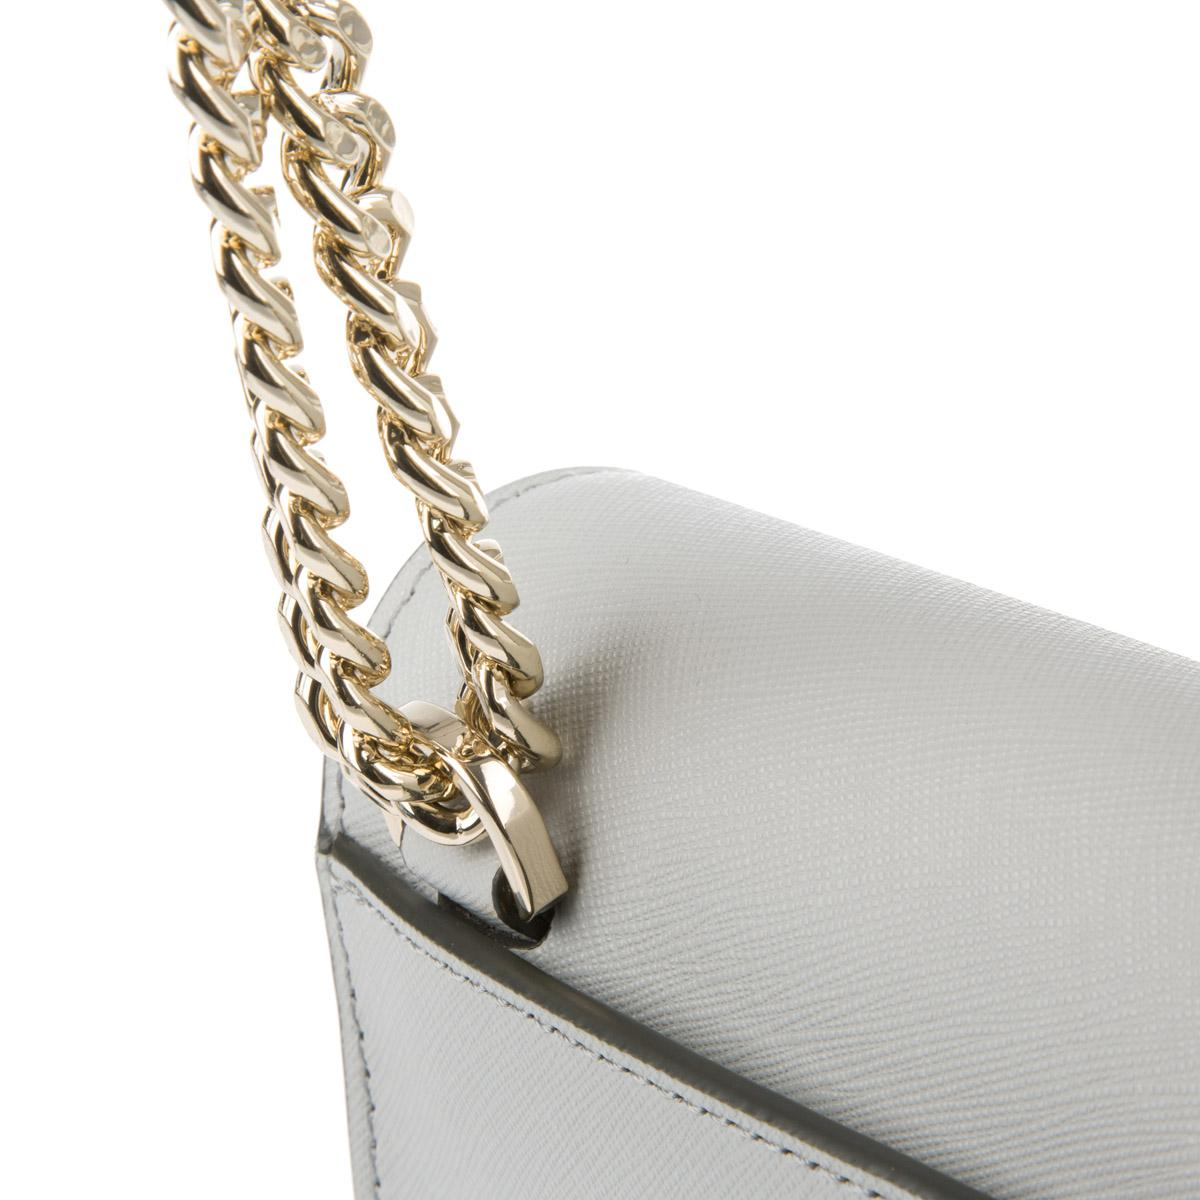 6f4669873a29 DKNY Bryant Park Chain Item Mini Flap Crossbody Natural Marble in ...